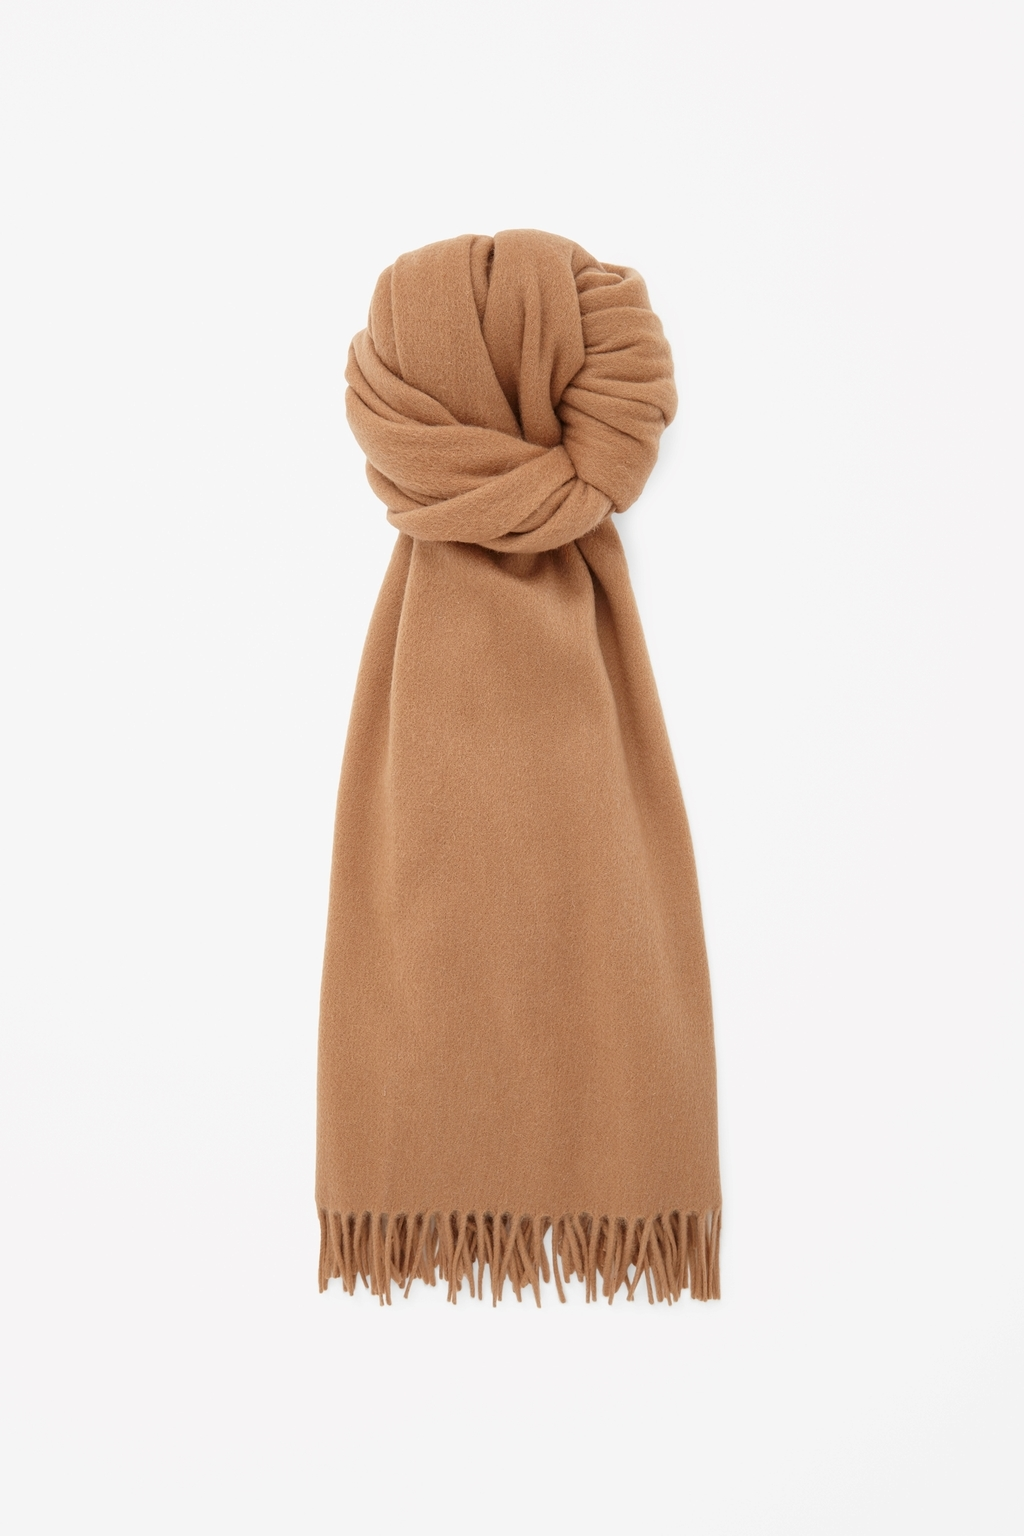 Oversized Wool Scarf - predominant colour: camel; occasions: casual, creative work; type of pattern: standard; style: regular; size: large; material: fabric; embellishment: fringing; pattern: plain; season: s/s 2015; wardrobe: basic